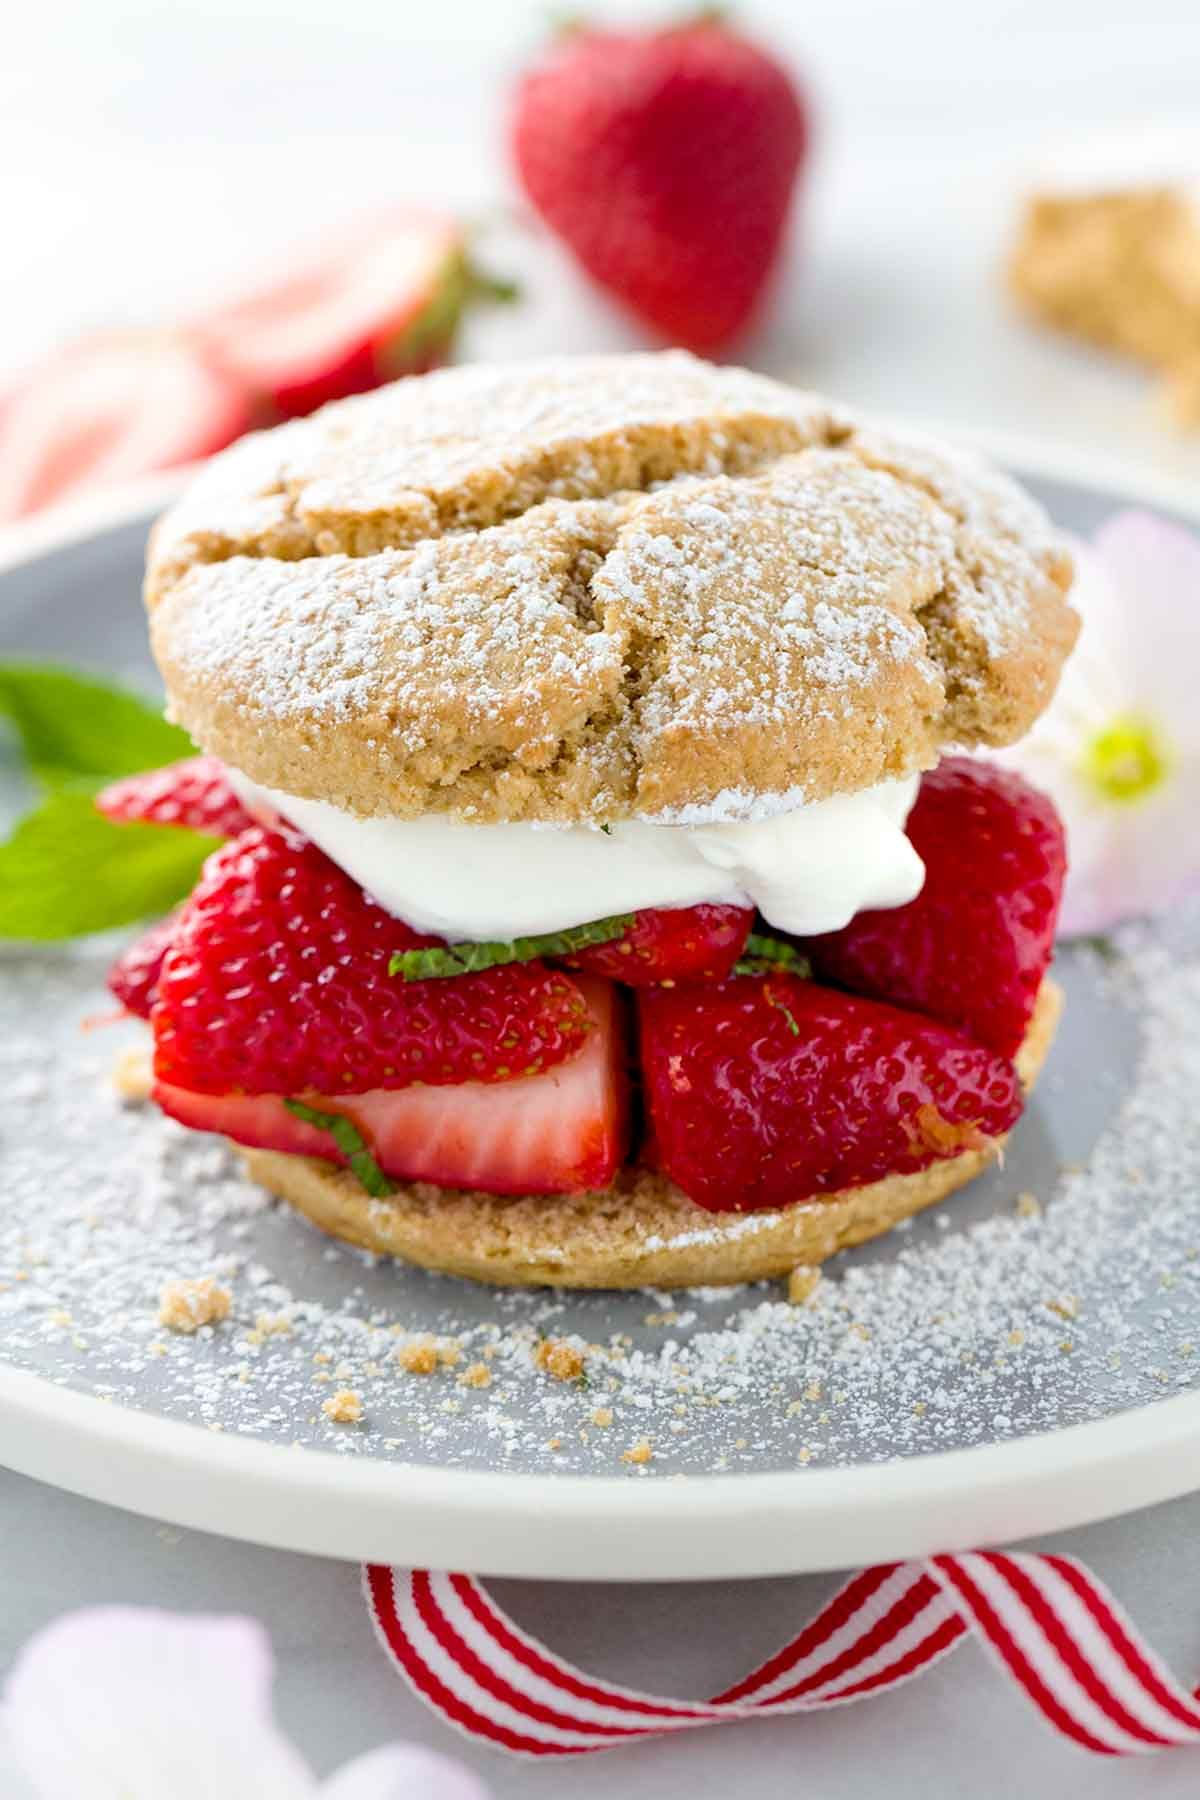 Strawberry shortcake recipe topped with ripe berries and silky whipped cream. Each cake is made with whole wheat flour for the ultimate dessert with benefits!